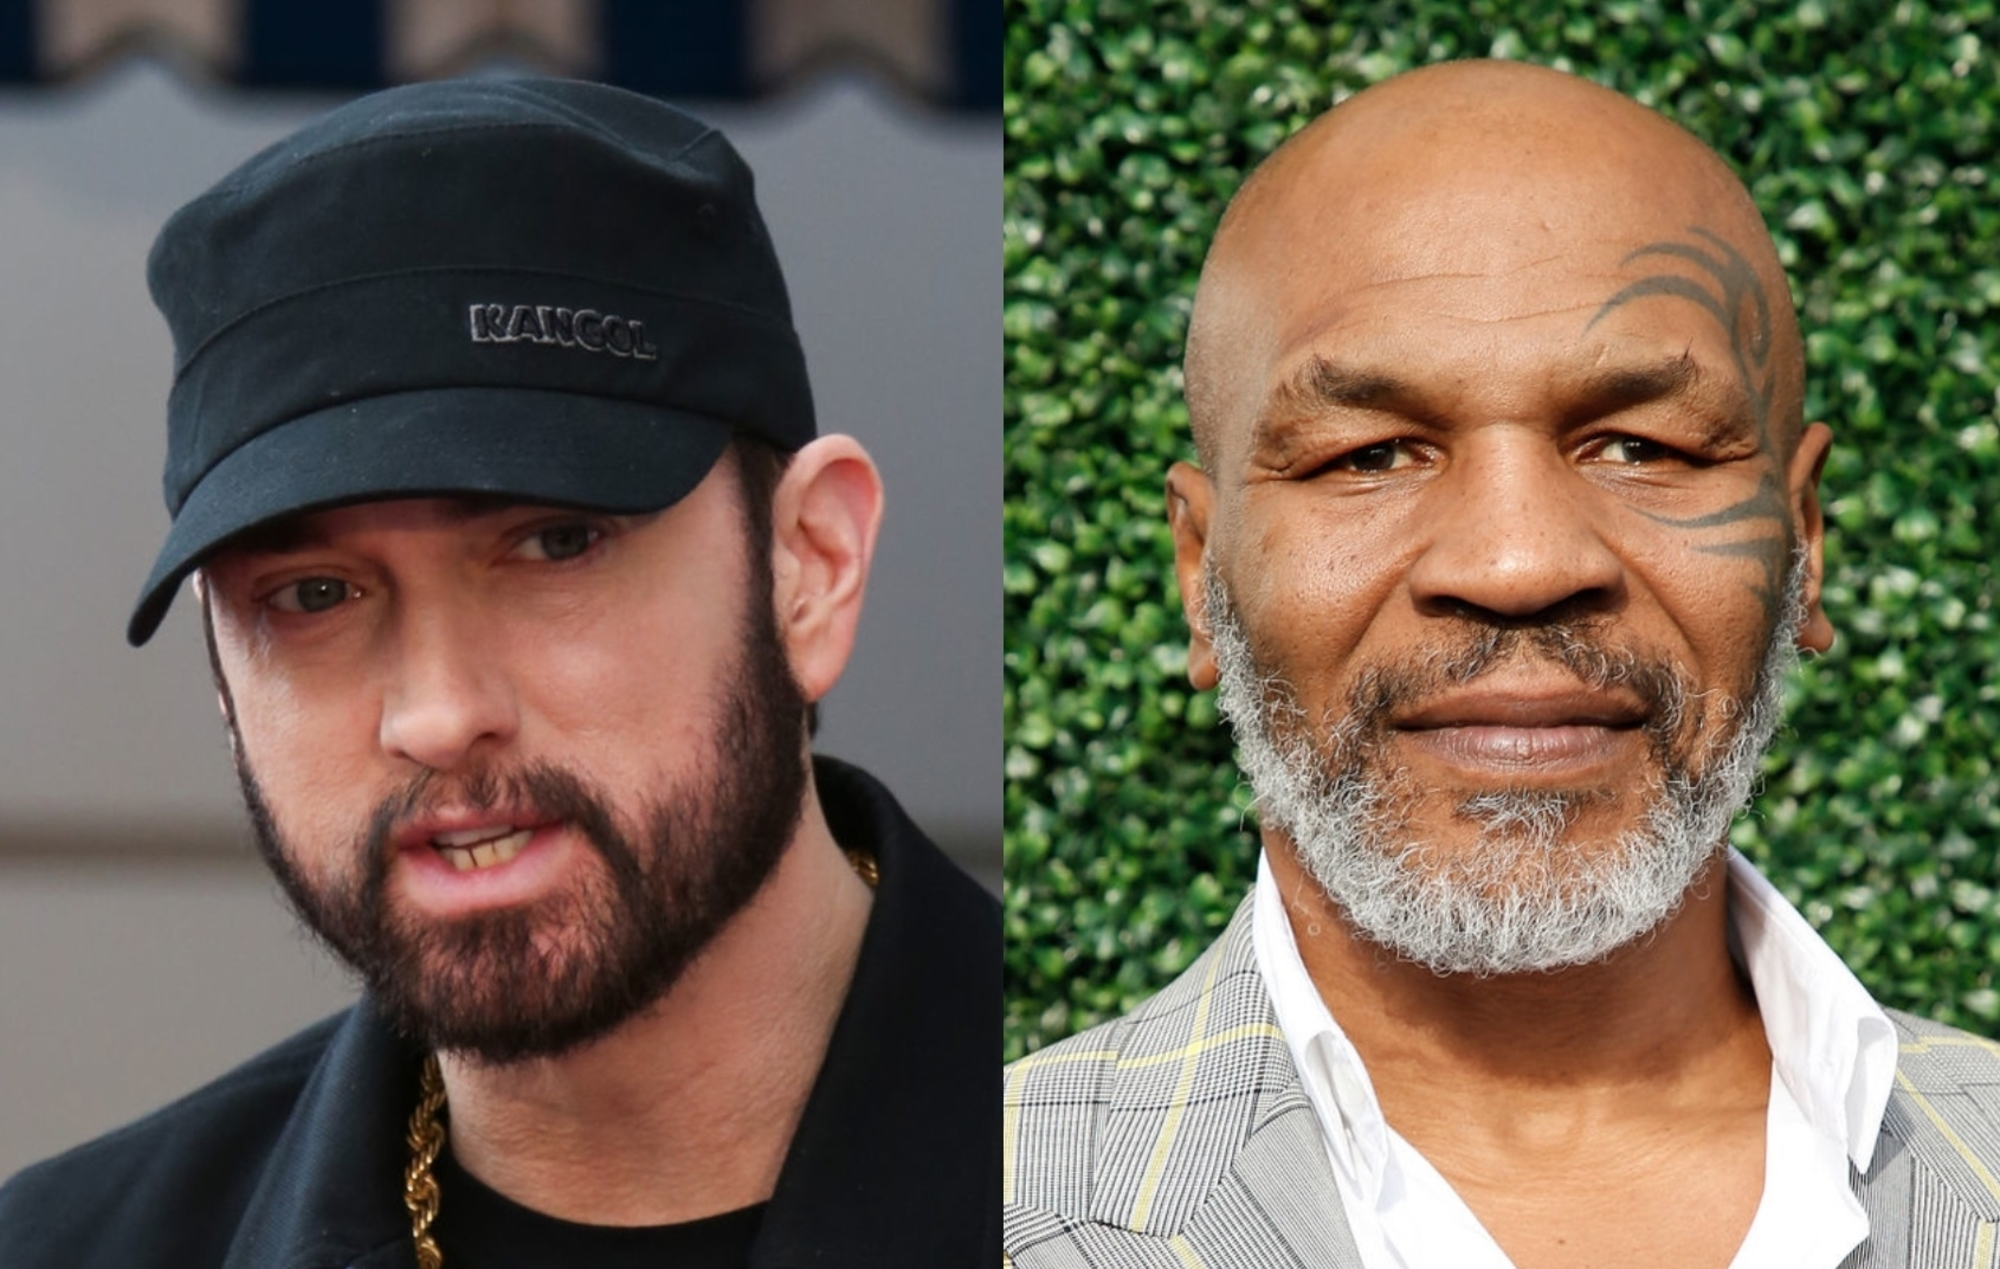 Eminem to appear on Mike Tyson's 'Hotboxin' podcast later tonight - EpicNews